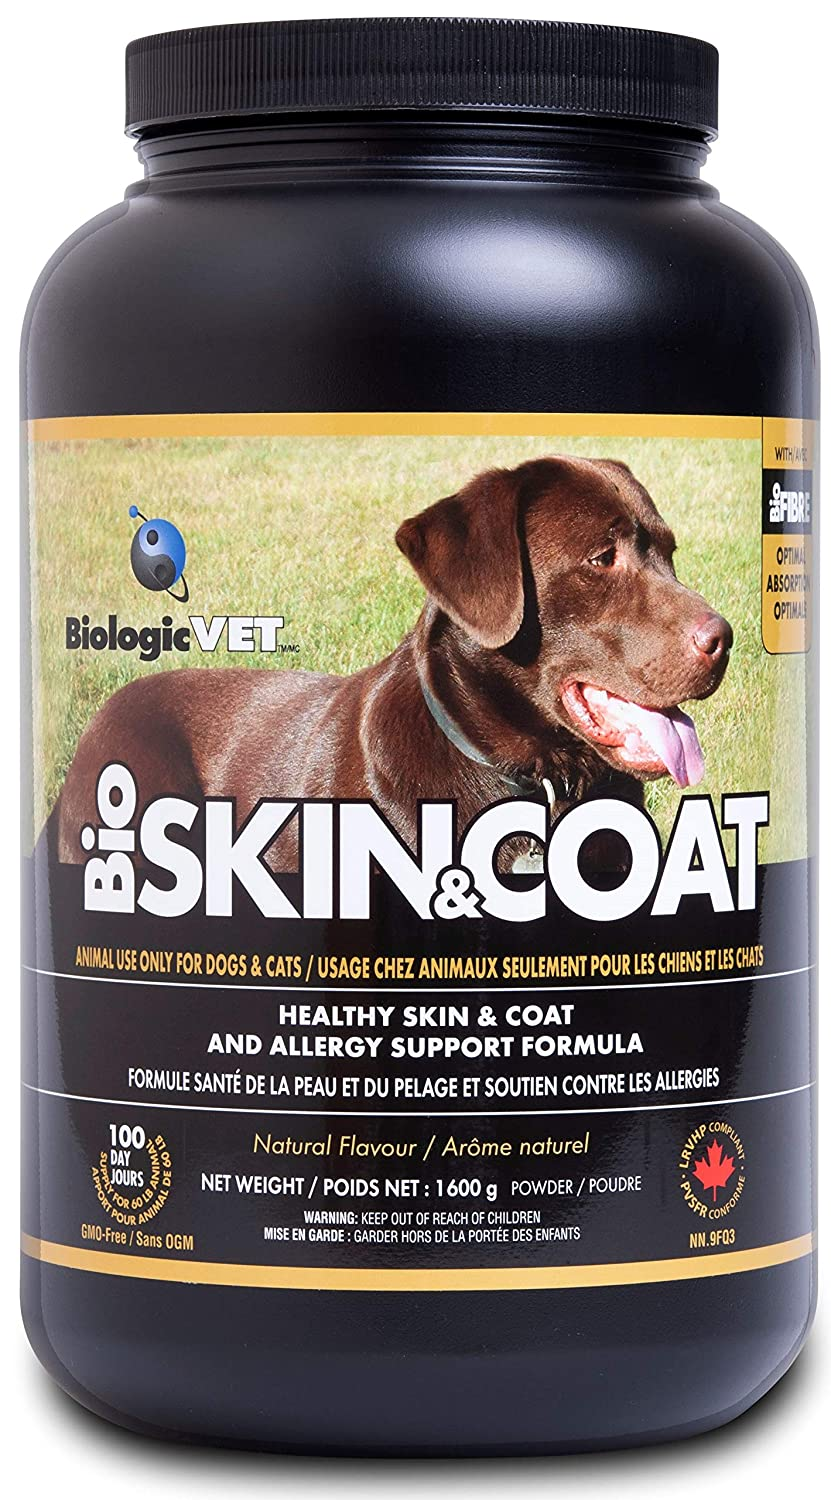 1600g BioSKIN&COAT Natural Antihistamine for Dogs and Cats 1600 g Powder